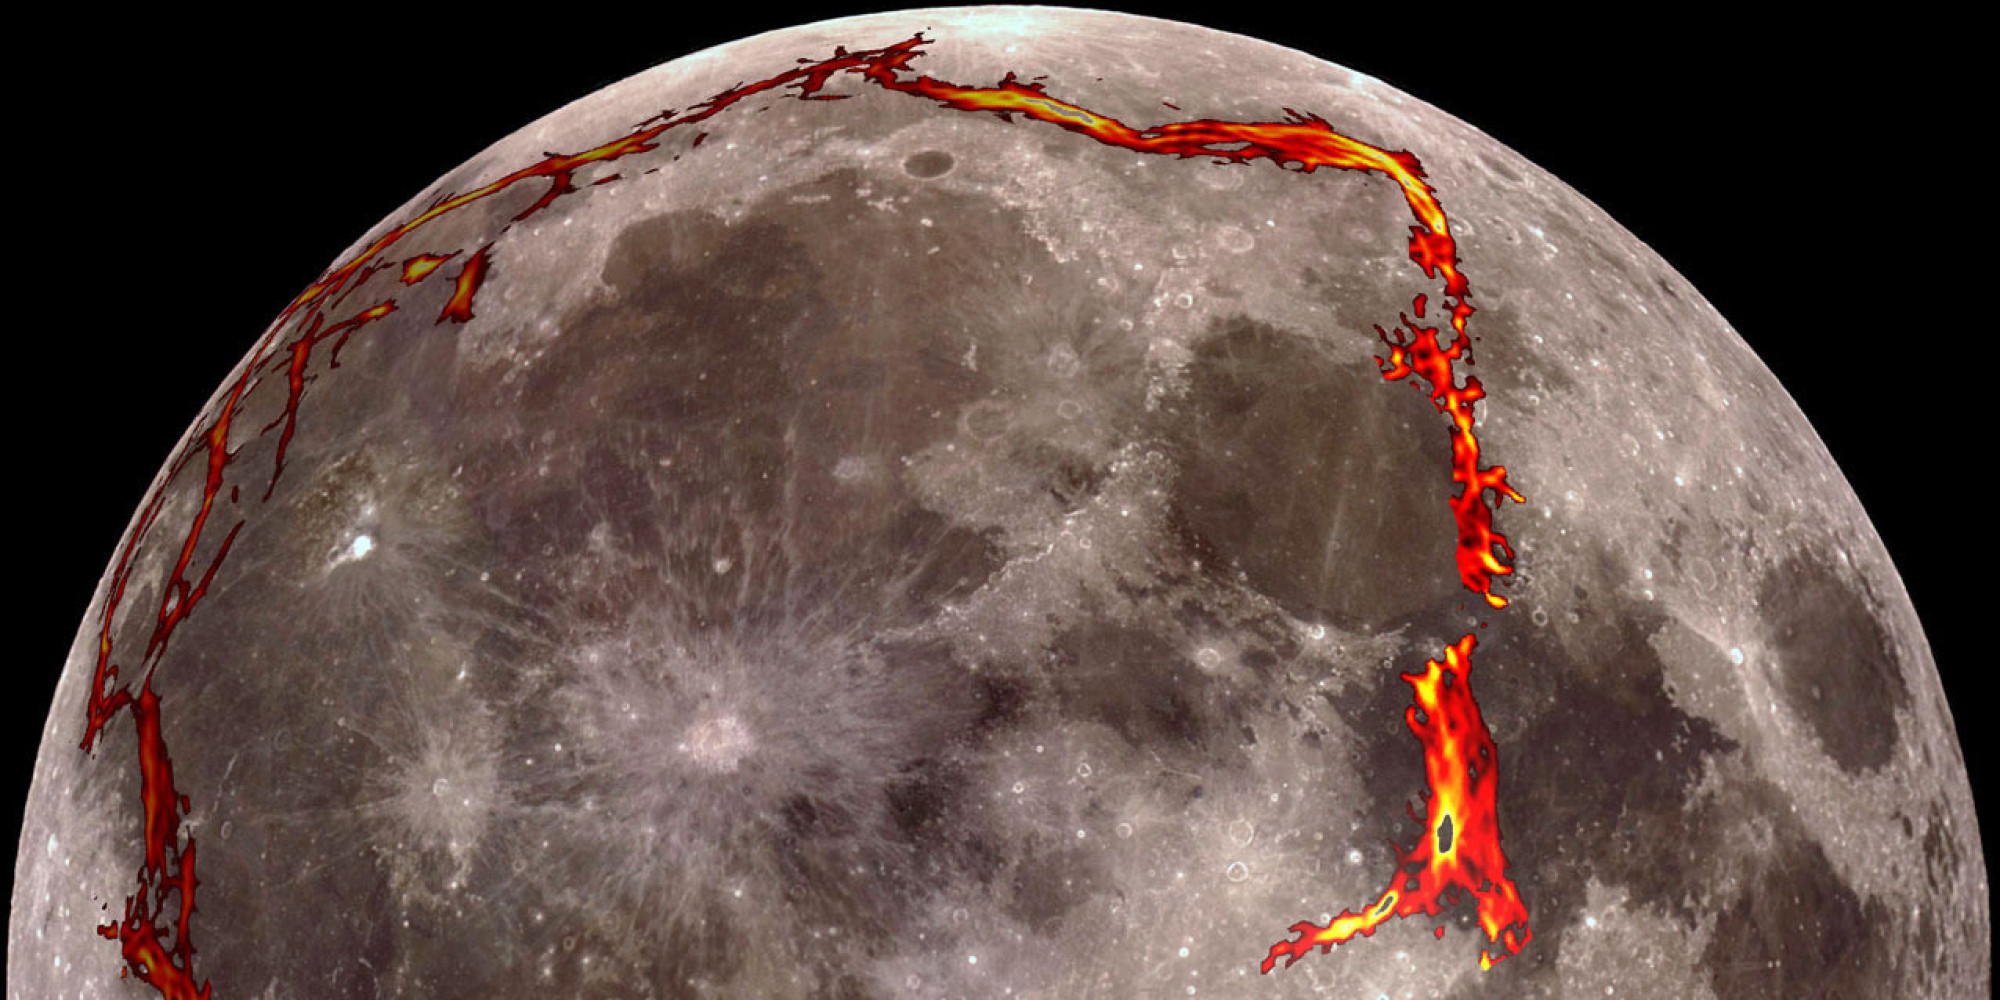 NASA Says There Is A Giant Square 'Structure' Under The Moon